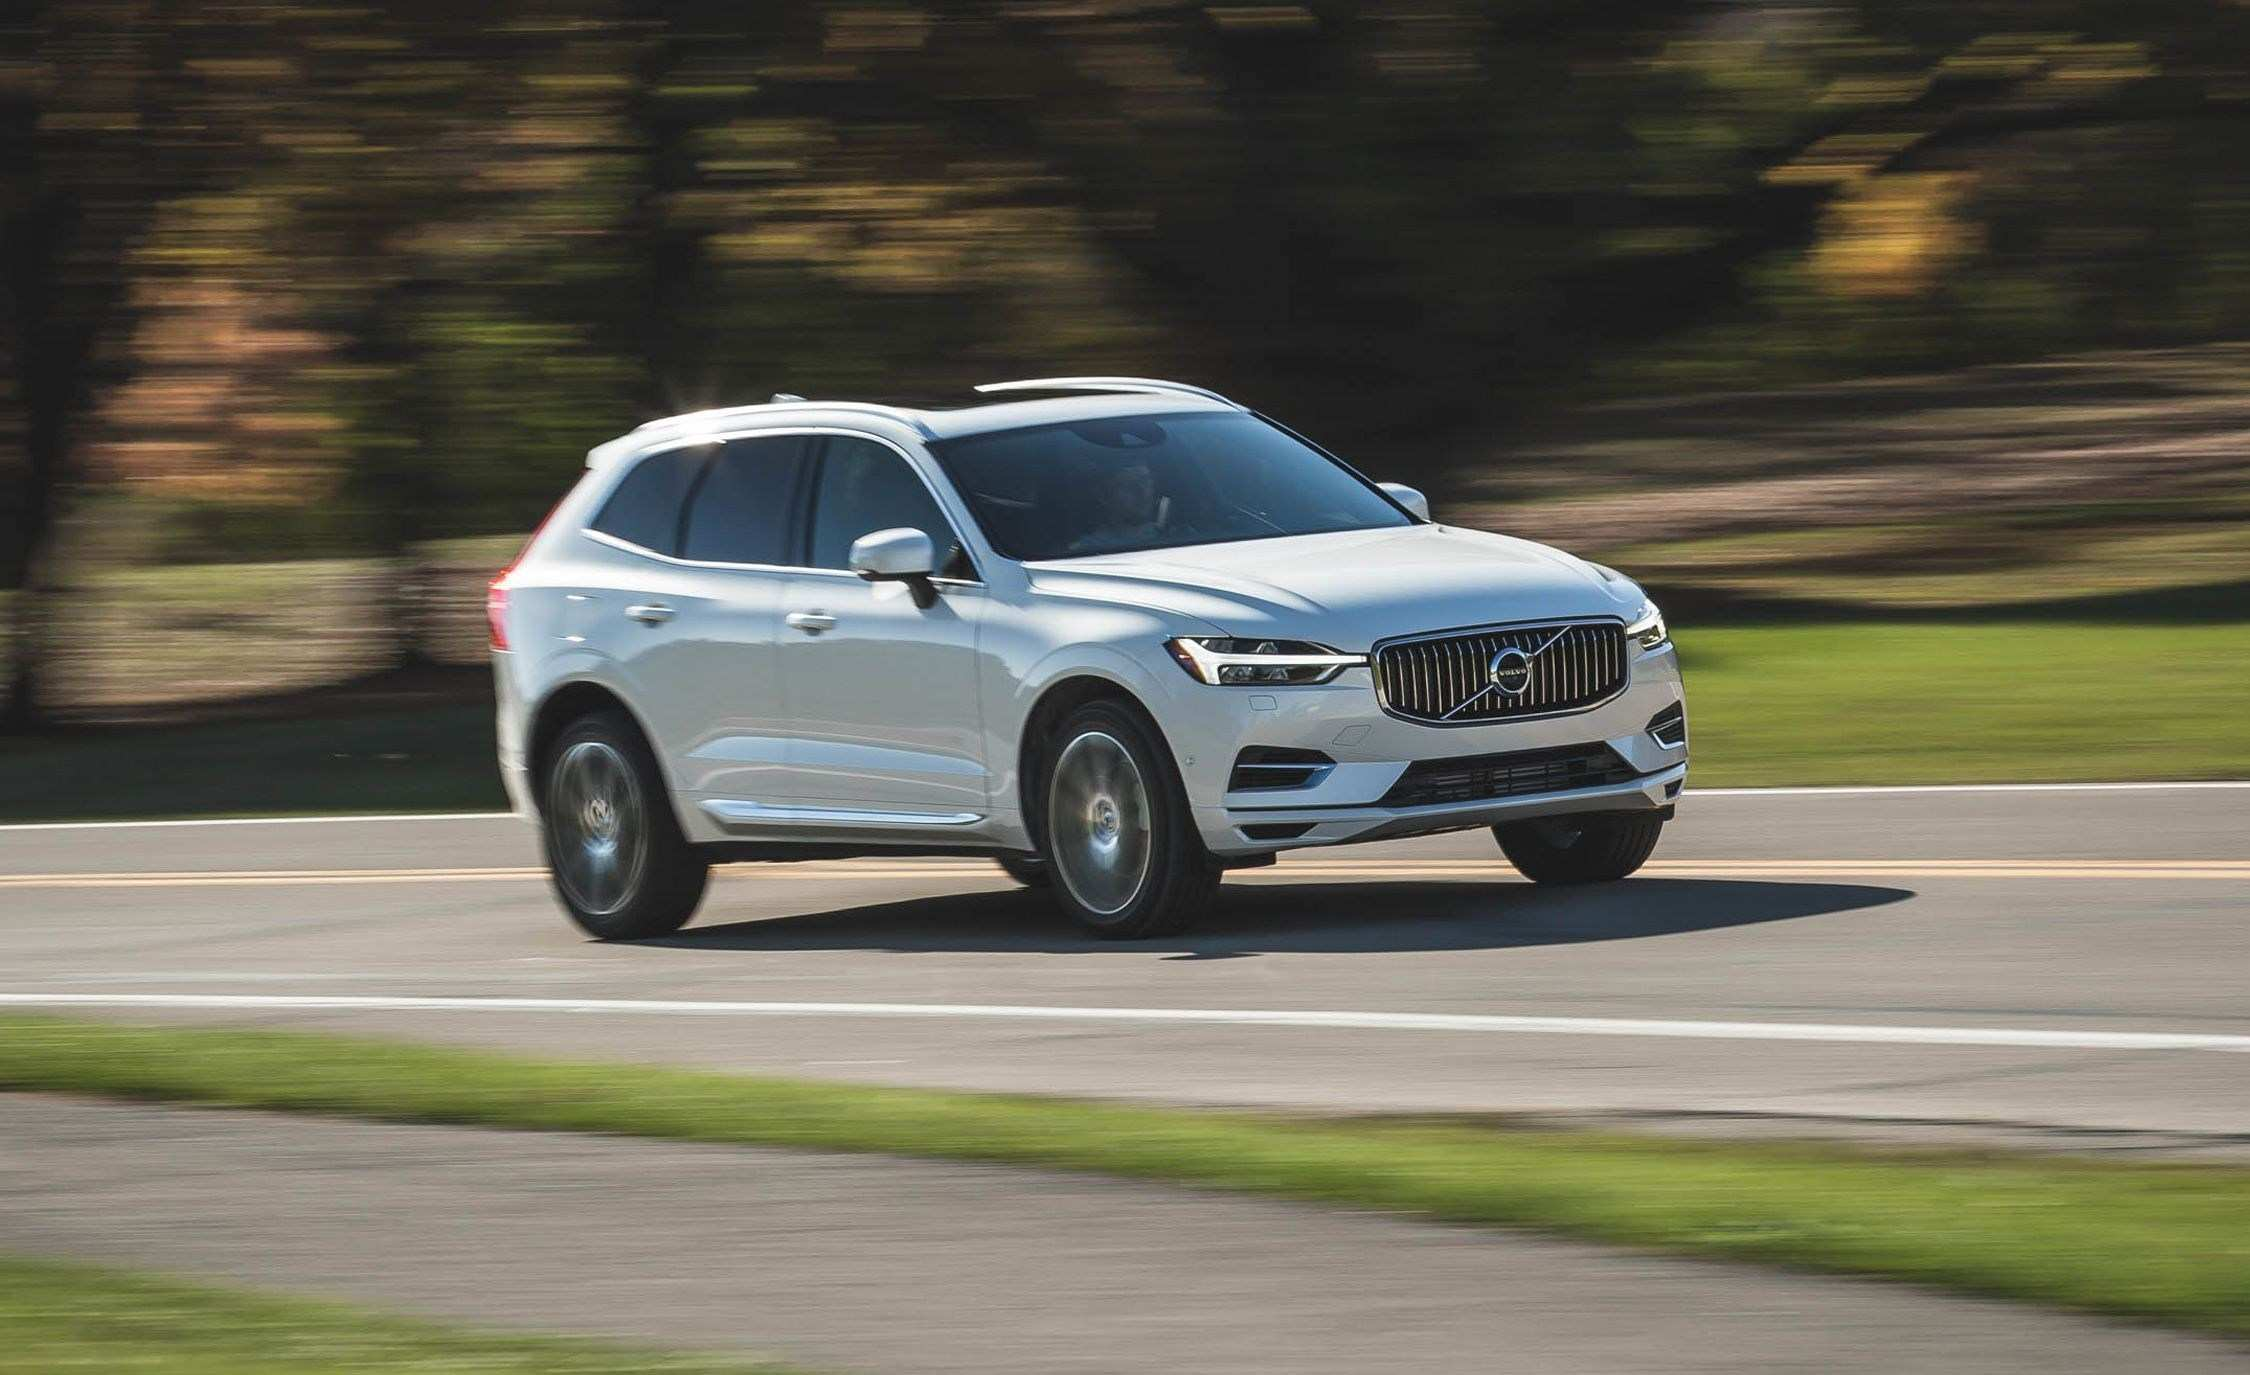 85 Great Volvo Xc60 2020 New Concept Exterior and Interior by Volvo Xc60 2020 New Concept